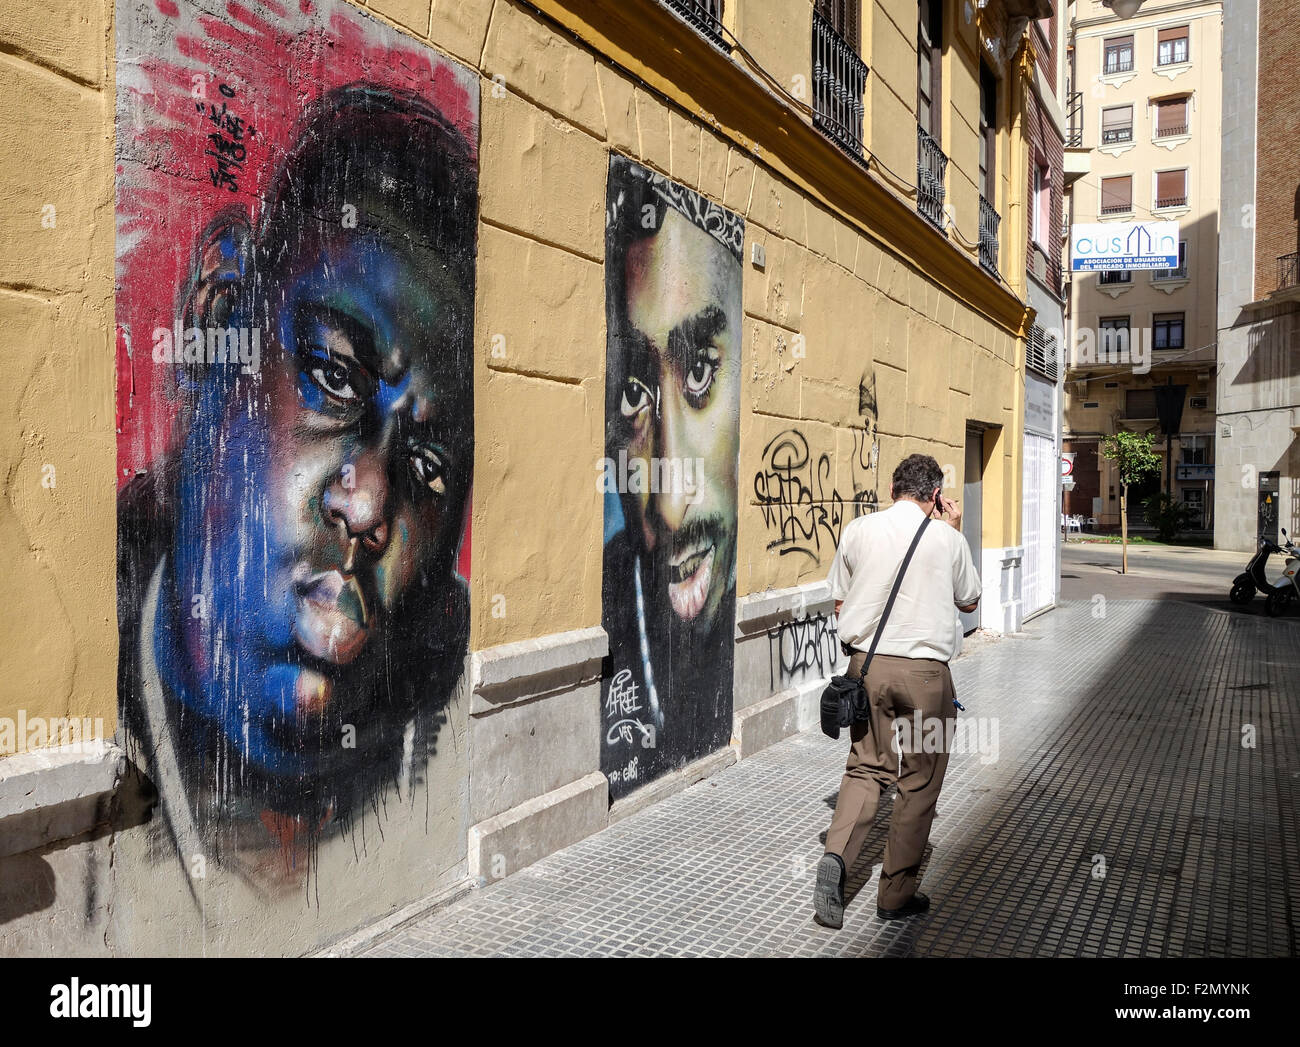 Exterior Wall Mural Mural Painting By 1free Of B I G And Tupac In Malaga Soho